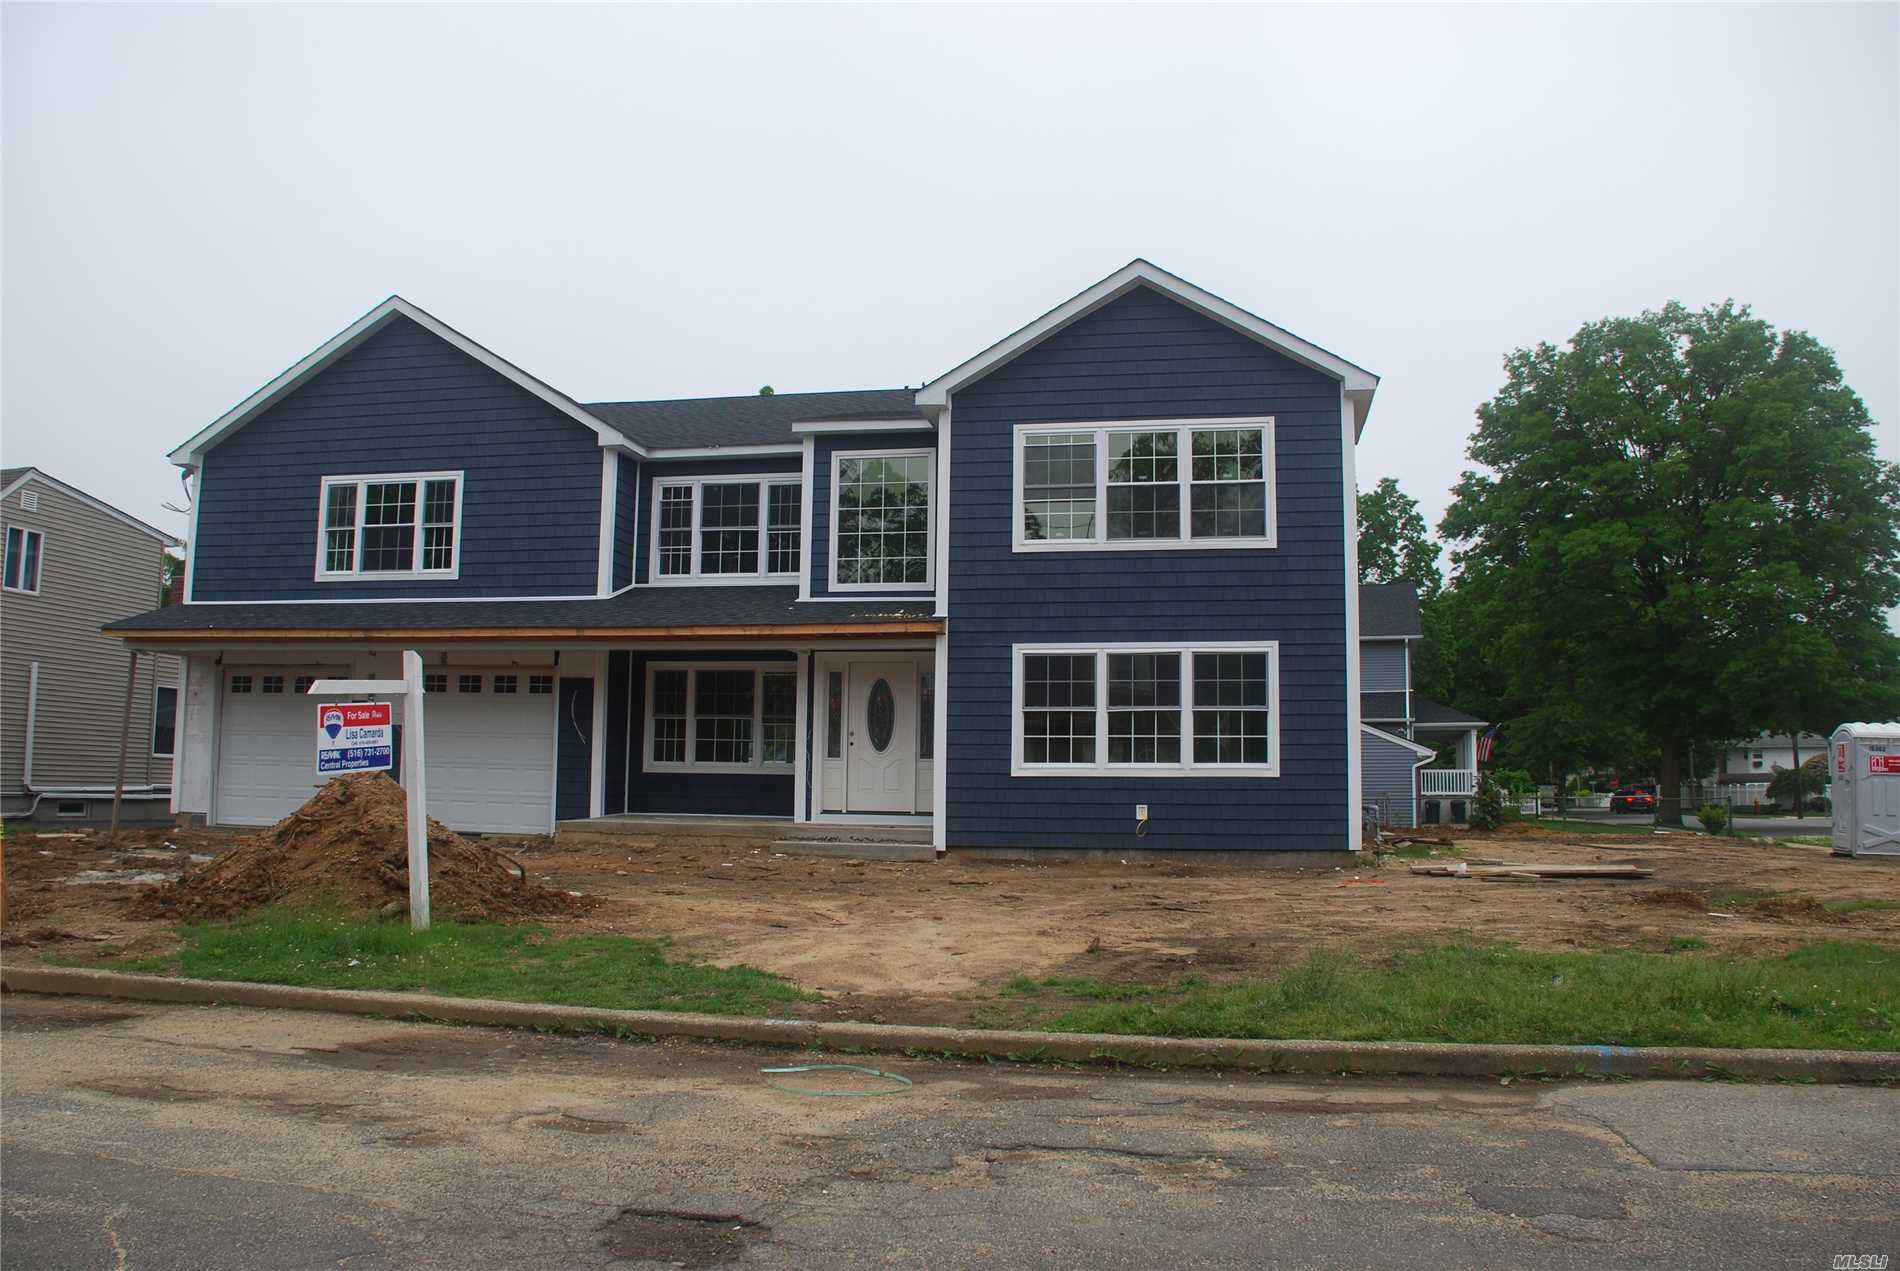 Being Built 4400 Sq Ft Colonial With 5 Bedrooms And 2.5 Bath. Hardwood Floors Throughout. Large Eik Open To Family Room With Fireplace. 2 Zones For Cac And Heat. Master Bedroom Suite With Wic And Full Bath. 4 More Bedrooms, Full Bath And Laundry. Time To Pick You Colors. Taxes To Be Determined